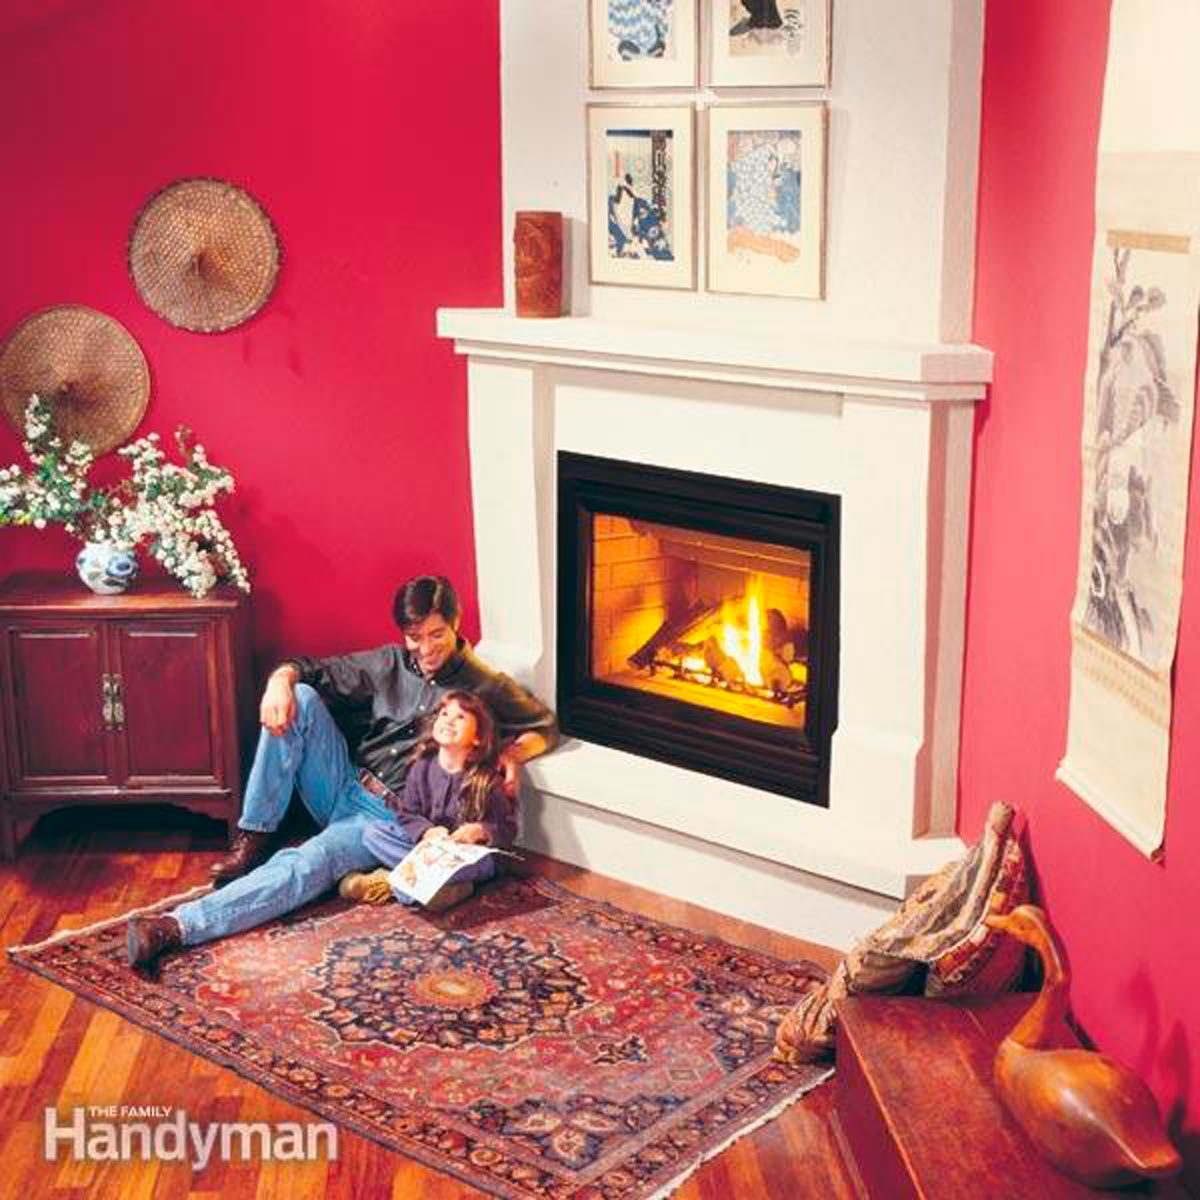 How Much Do Gas Fireplace Logs Cost How To Install A Gas Fireplace Diy Built In Gas Fireplace